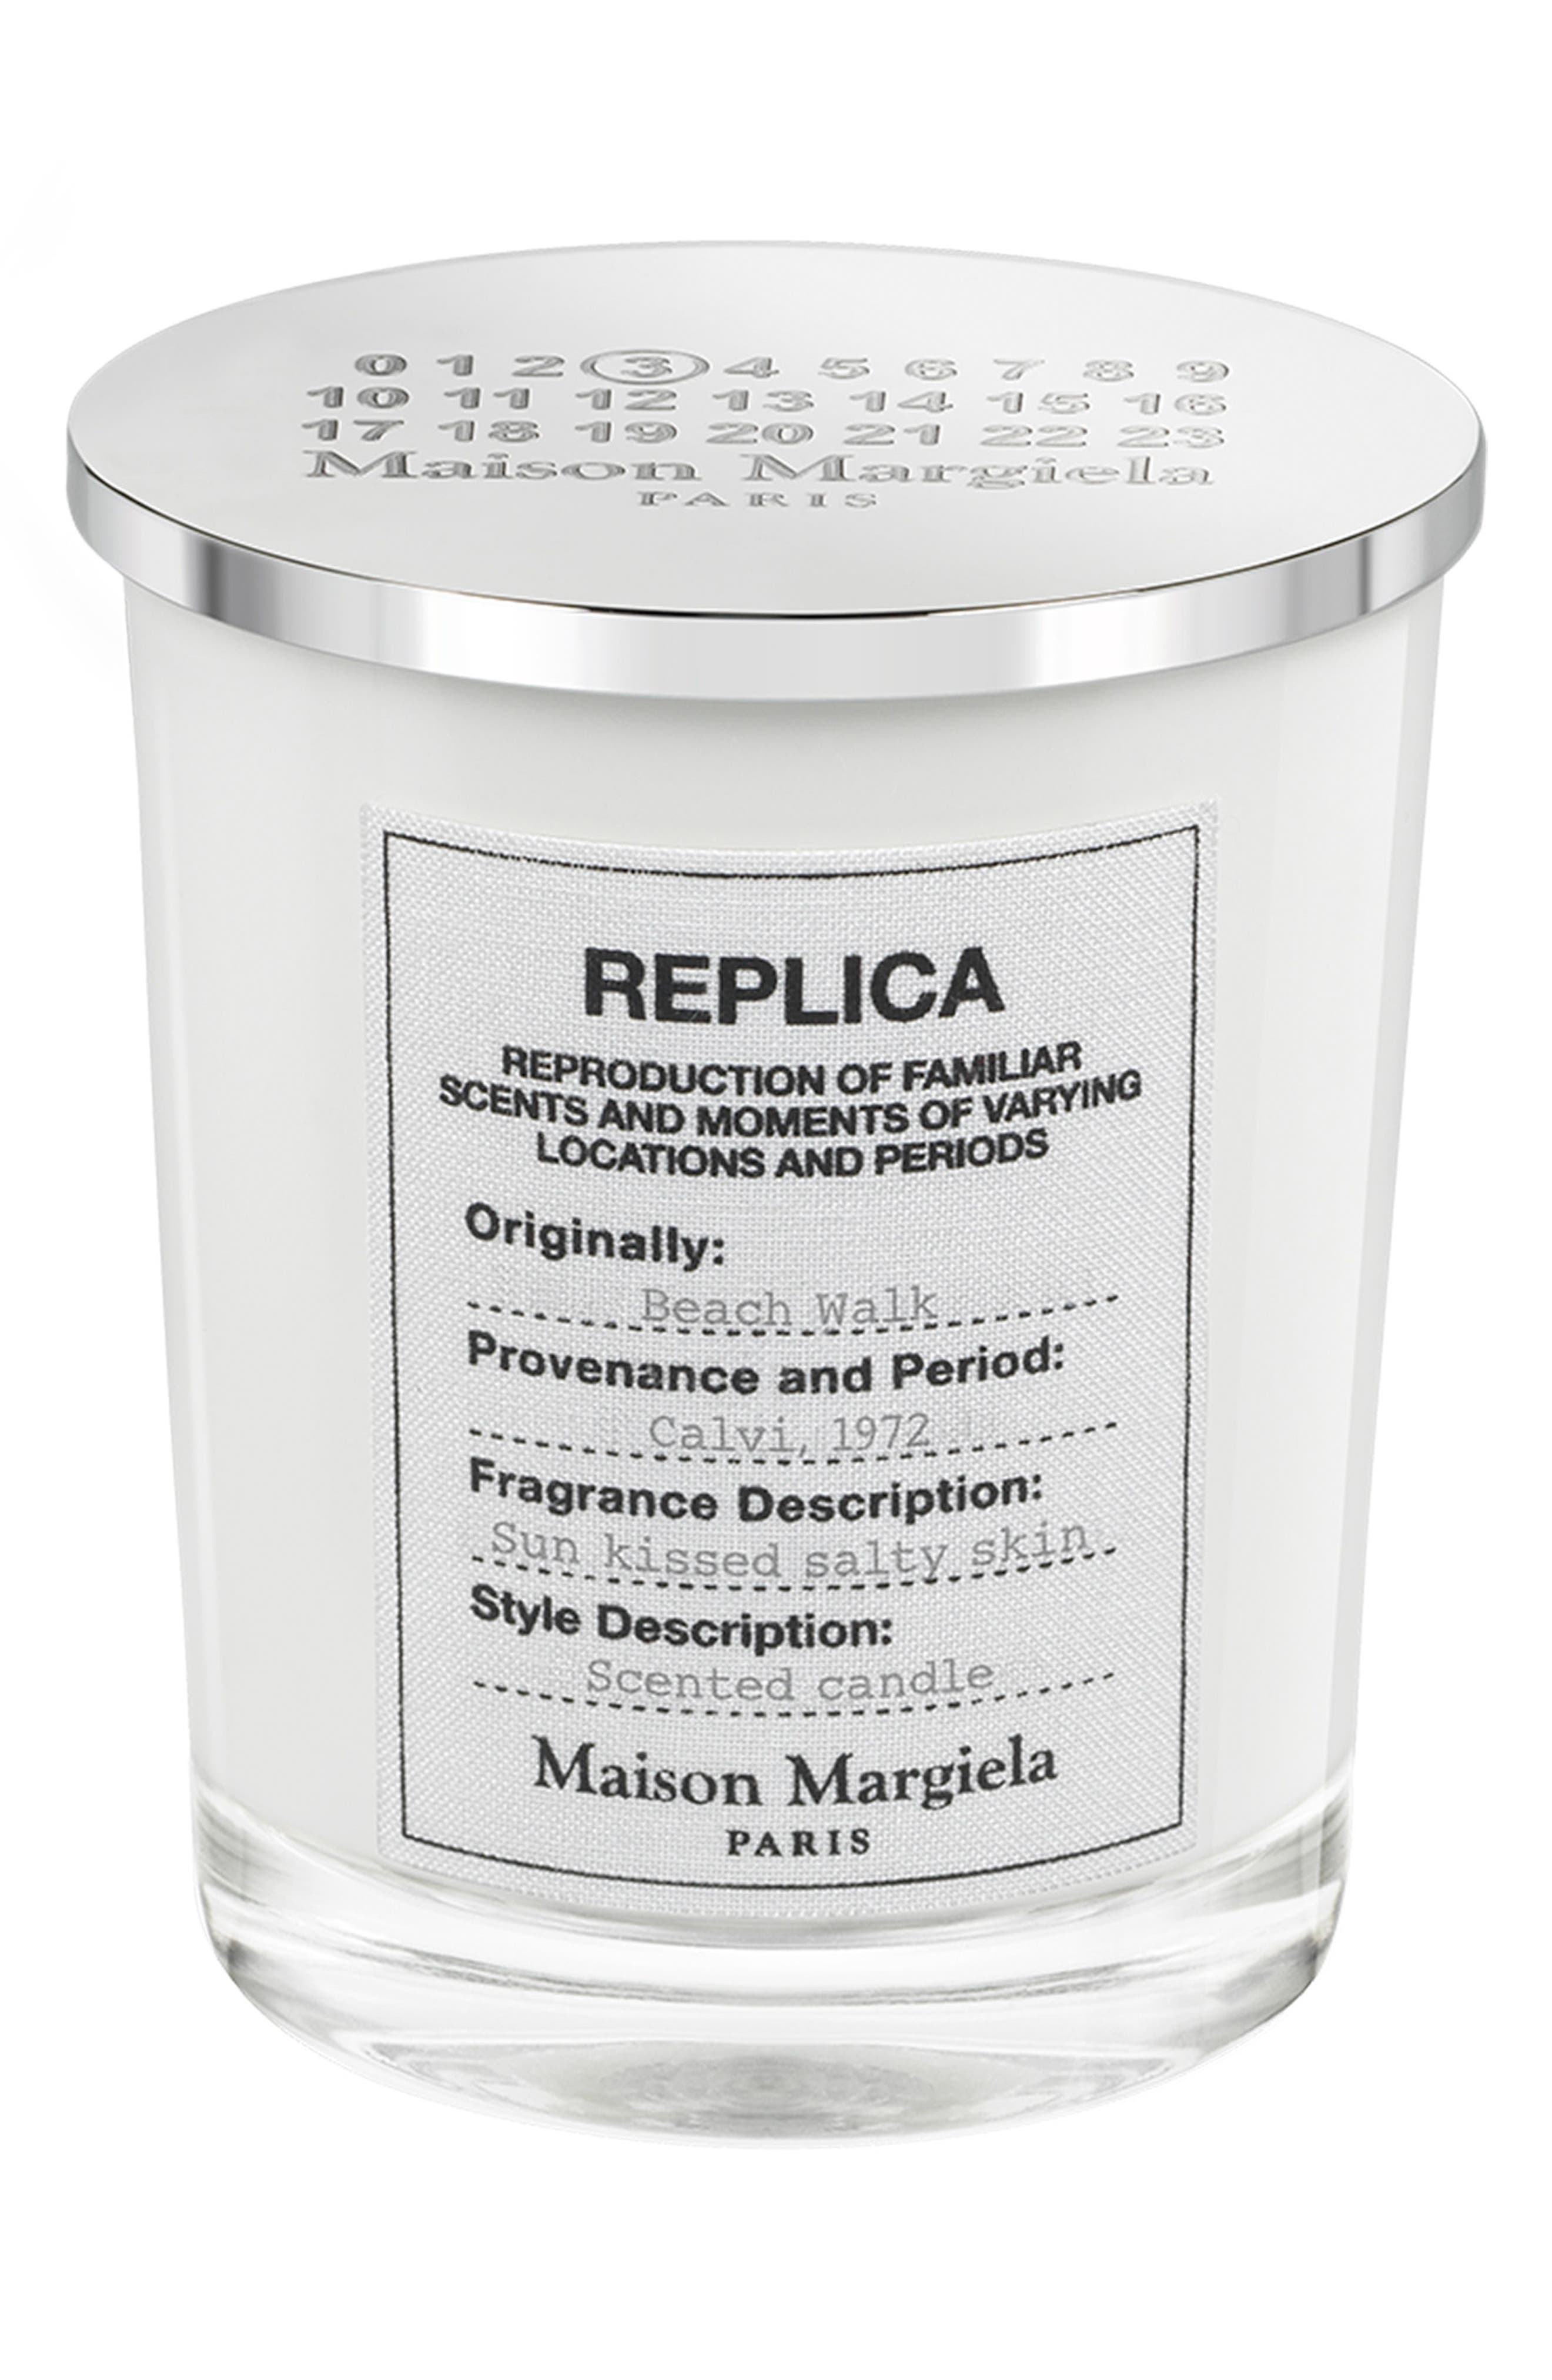 Replica Beach Walk Scented Candle,                             Main thumbnail 1, color,                             No Color